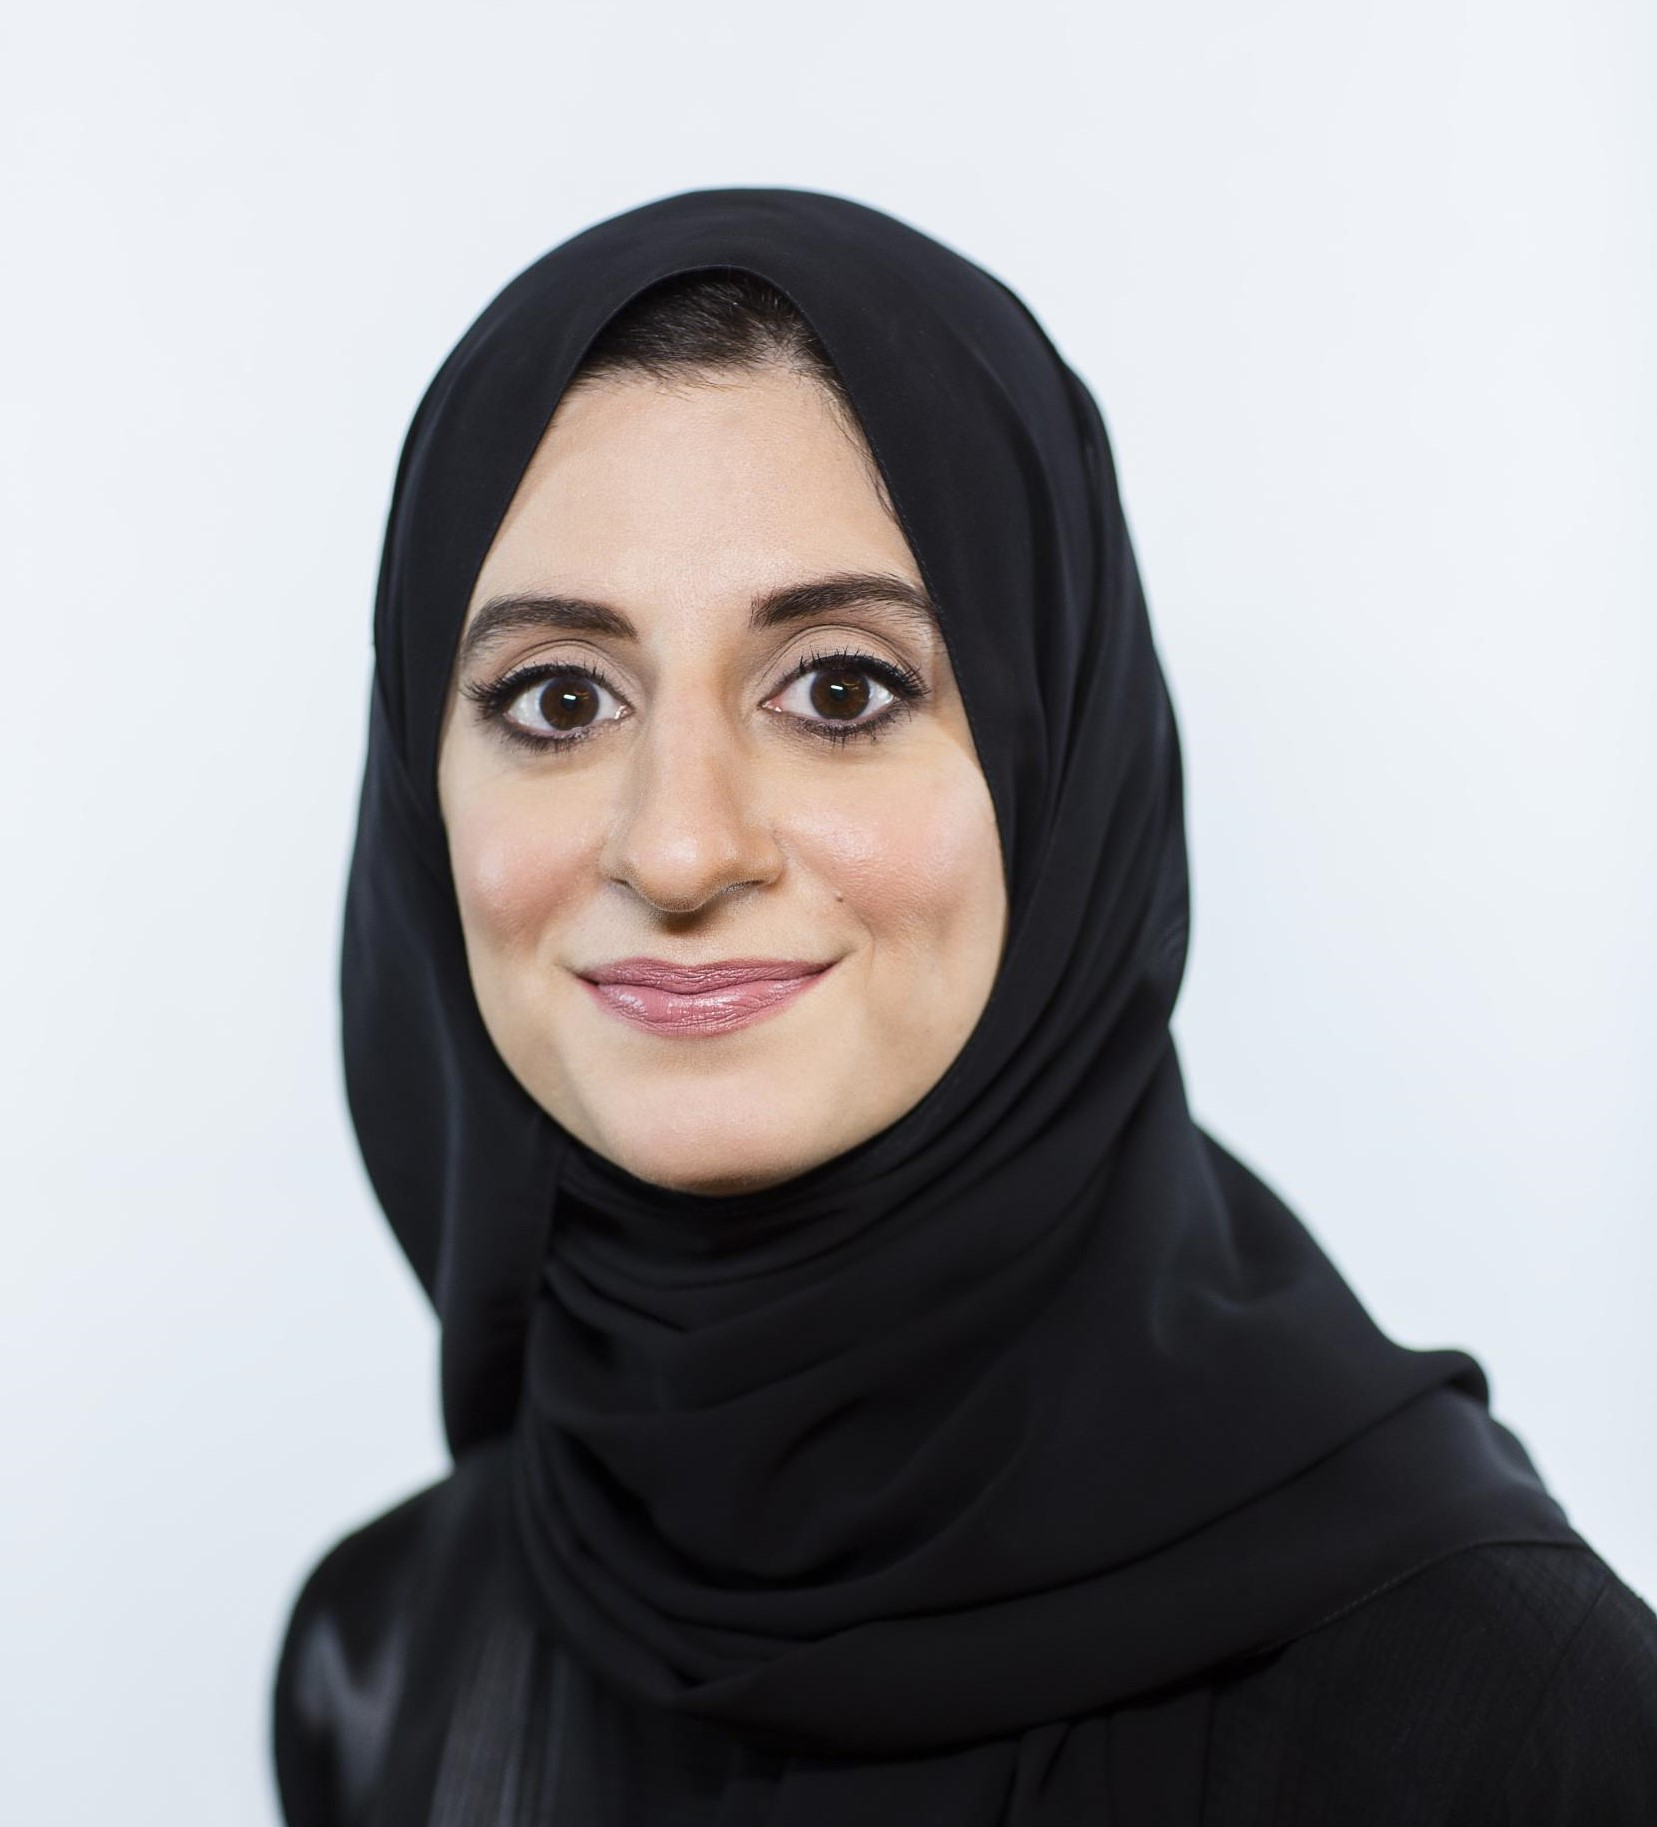 Her Excellency Huda AlHashimi